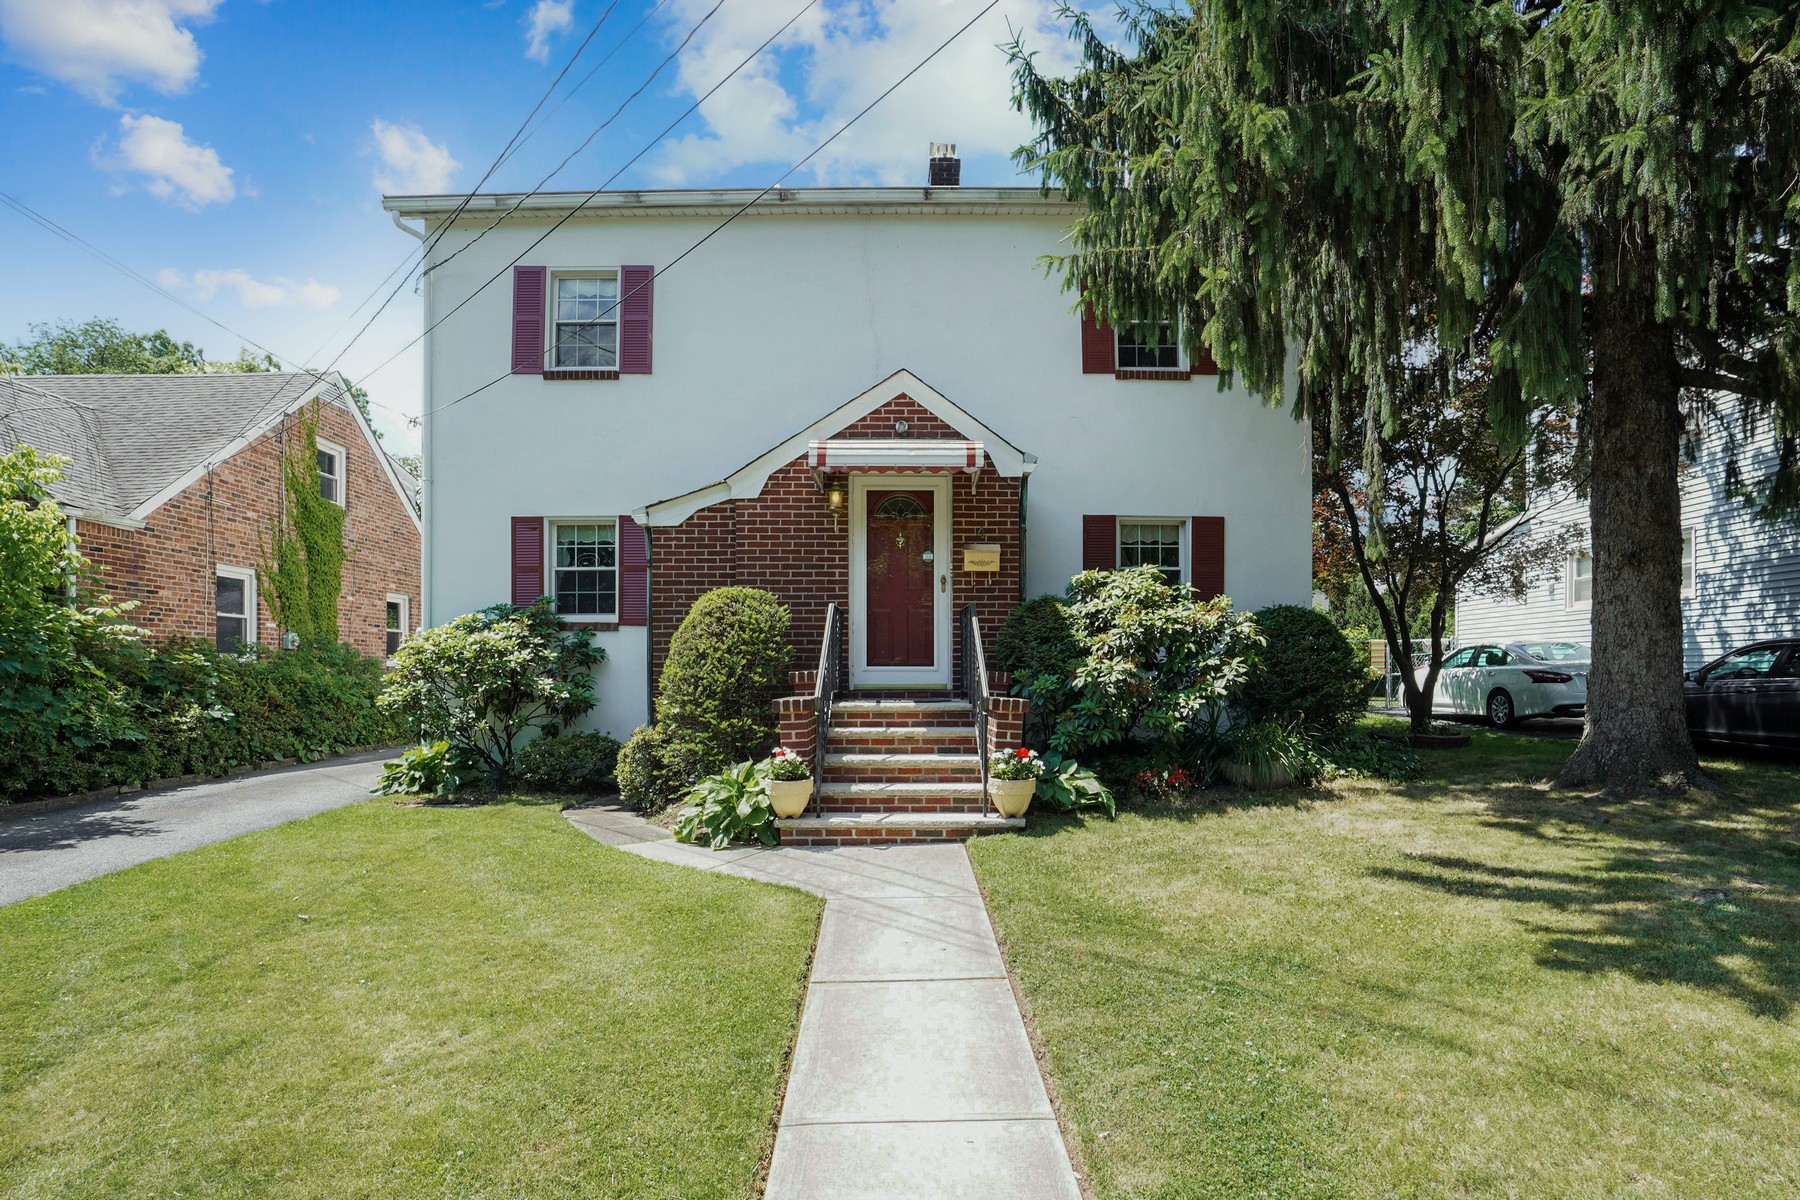 Multi-Family Homes for Active at Lovingly Maintained Two-Family Home 4 Almira Street Bloomfield, New Jersey 07003 United States